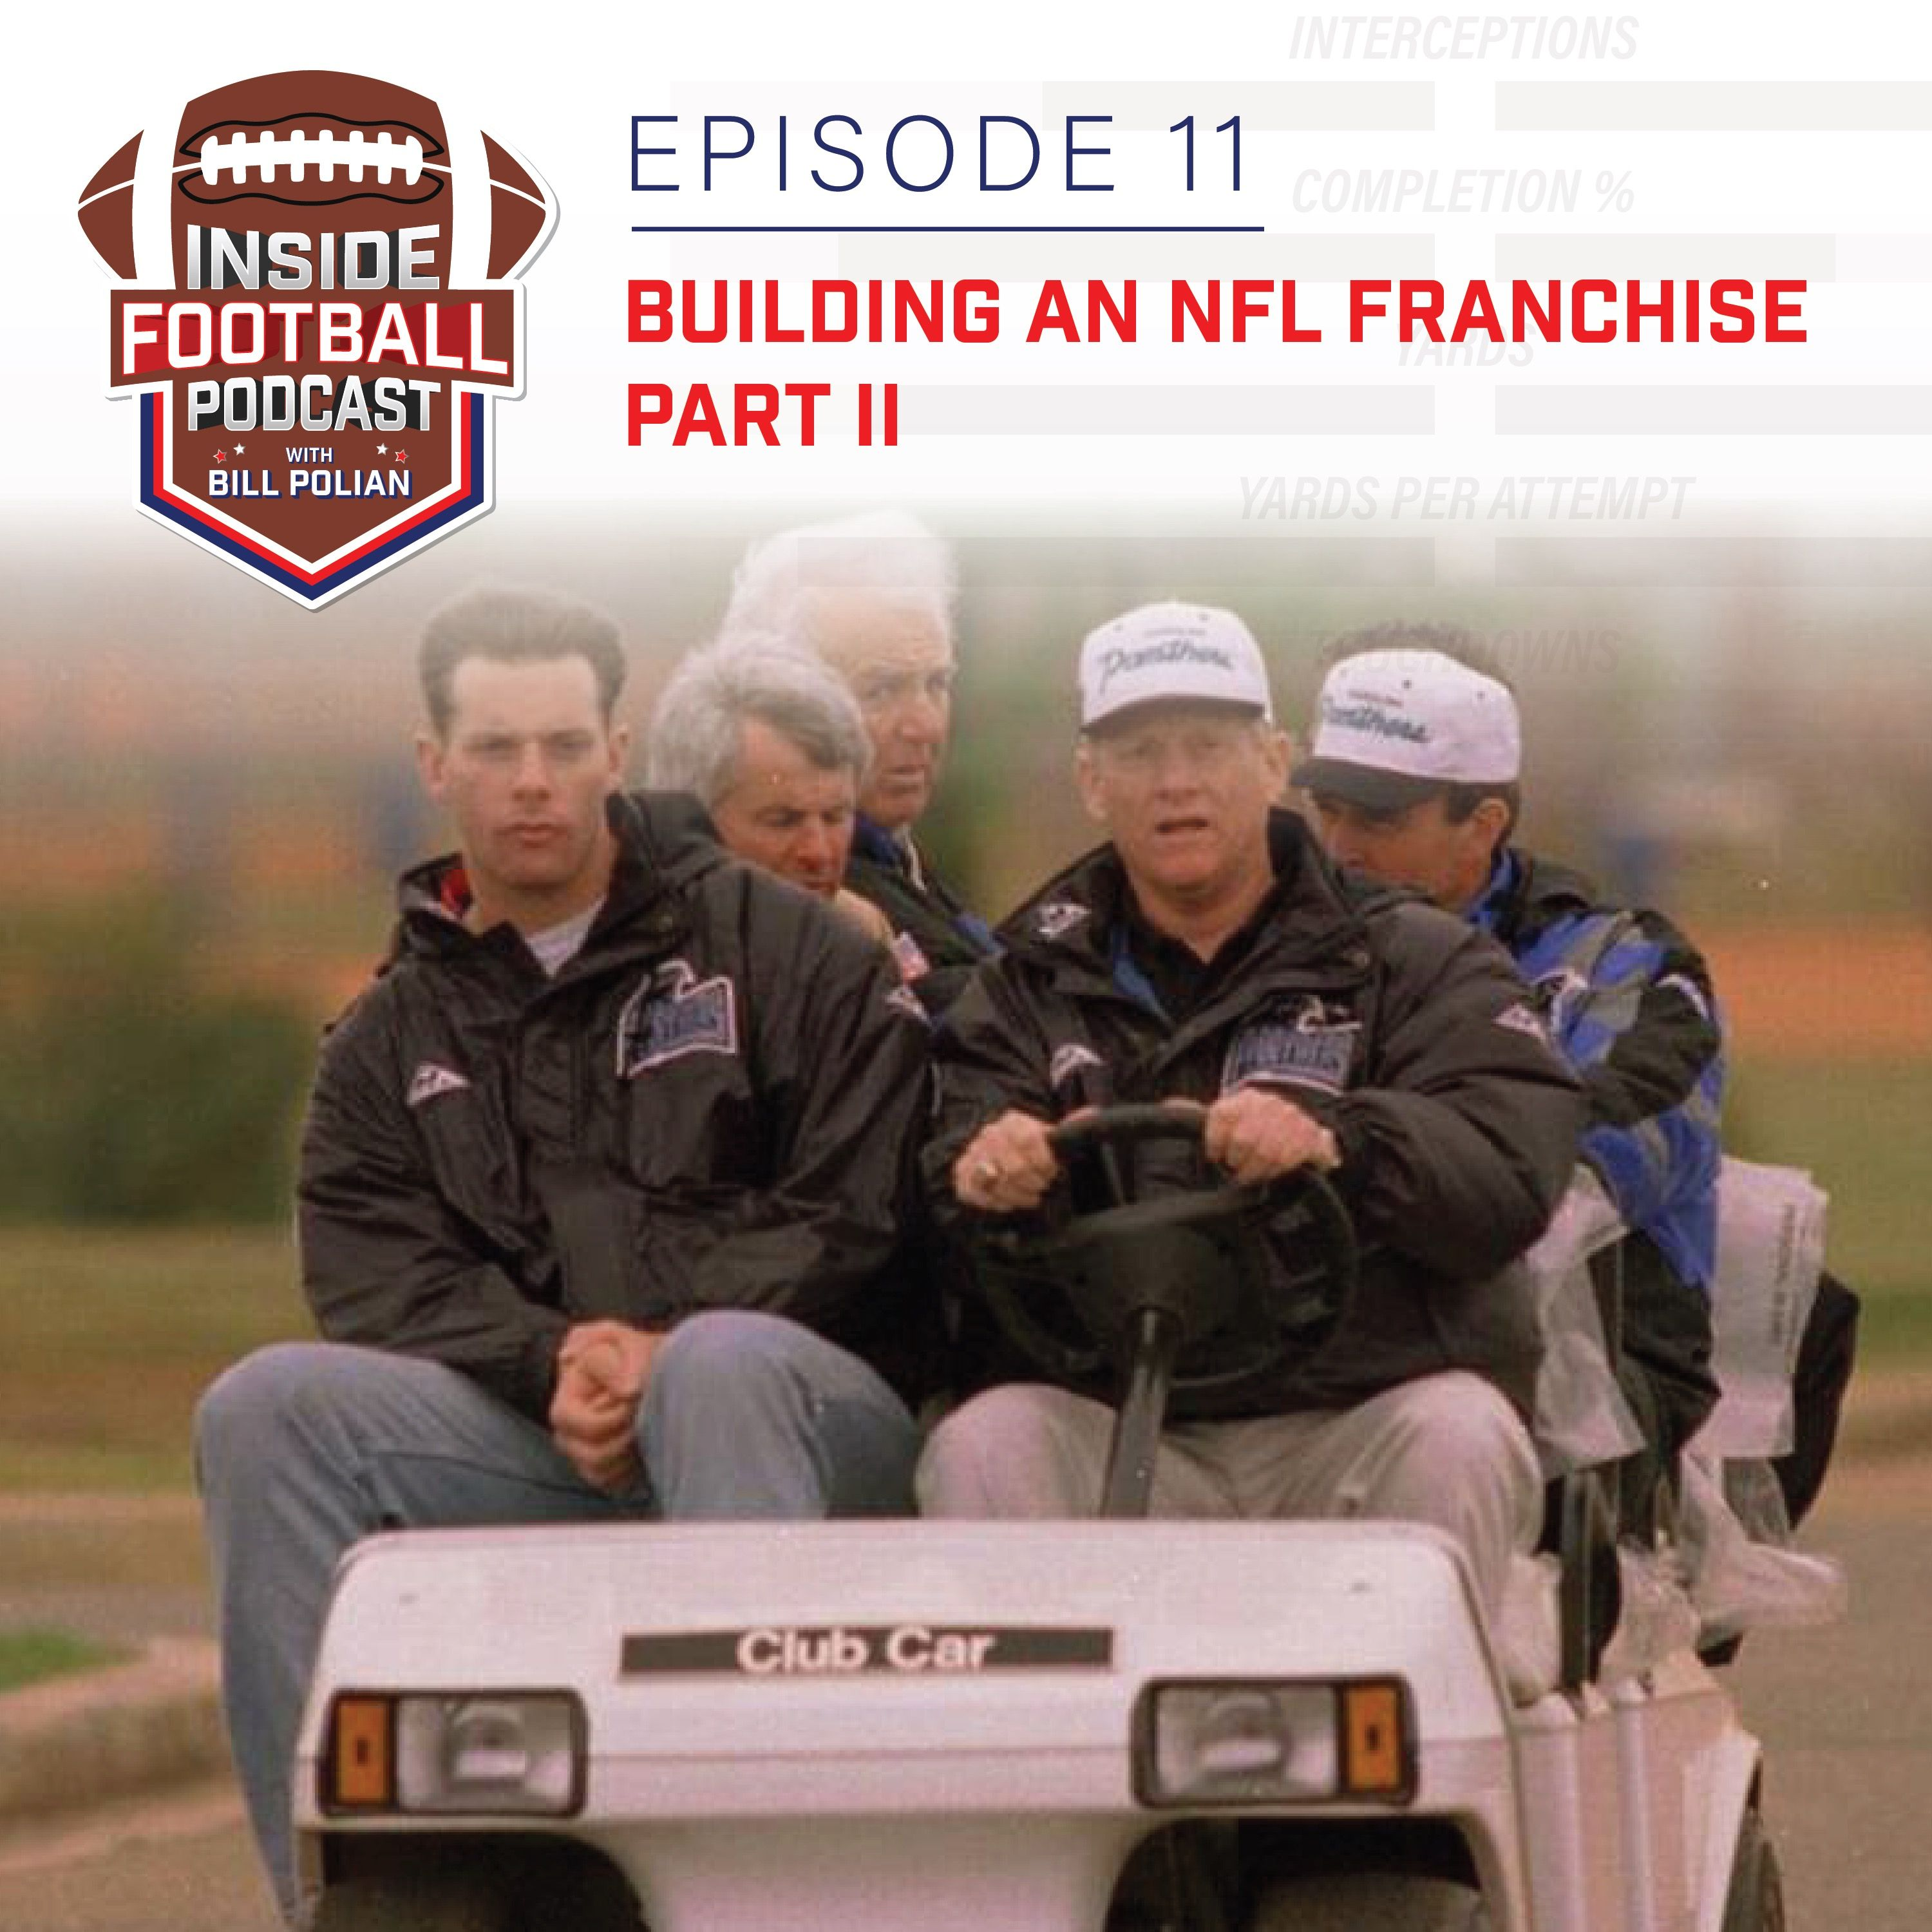 Building an NFL Franchise Part 2 and the 1995 Draft Decision between Kerry Collins and Steve McNair